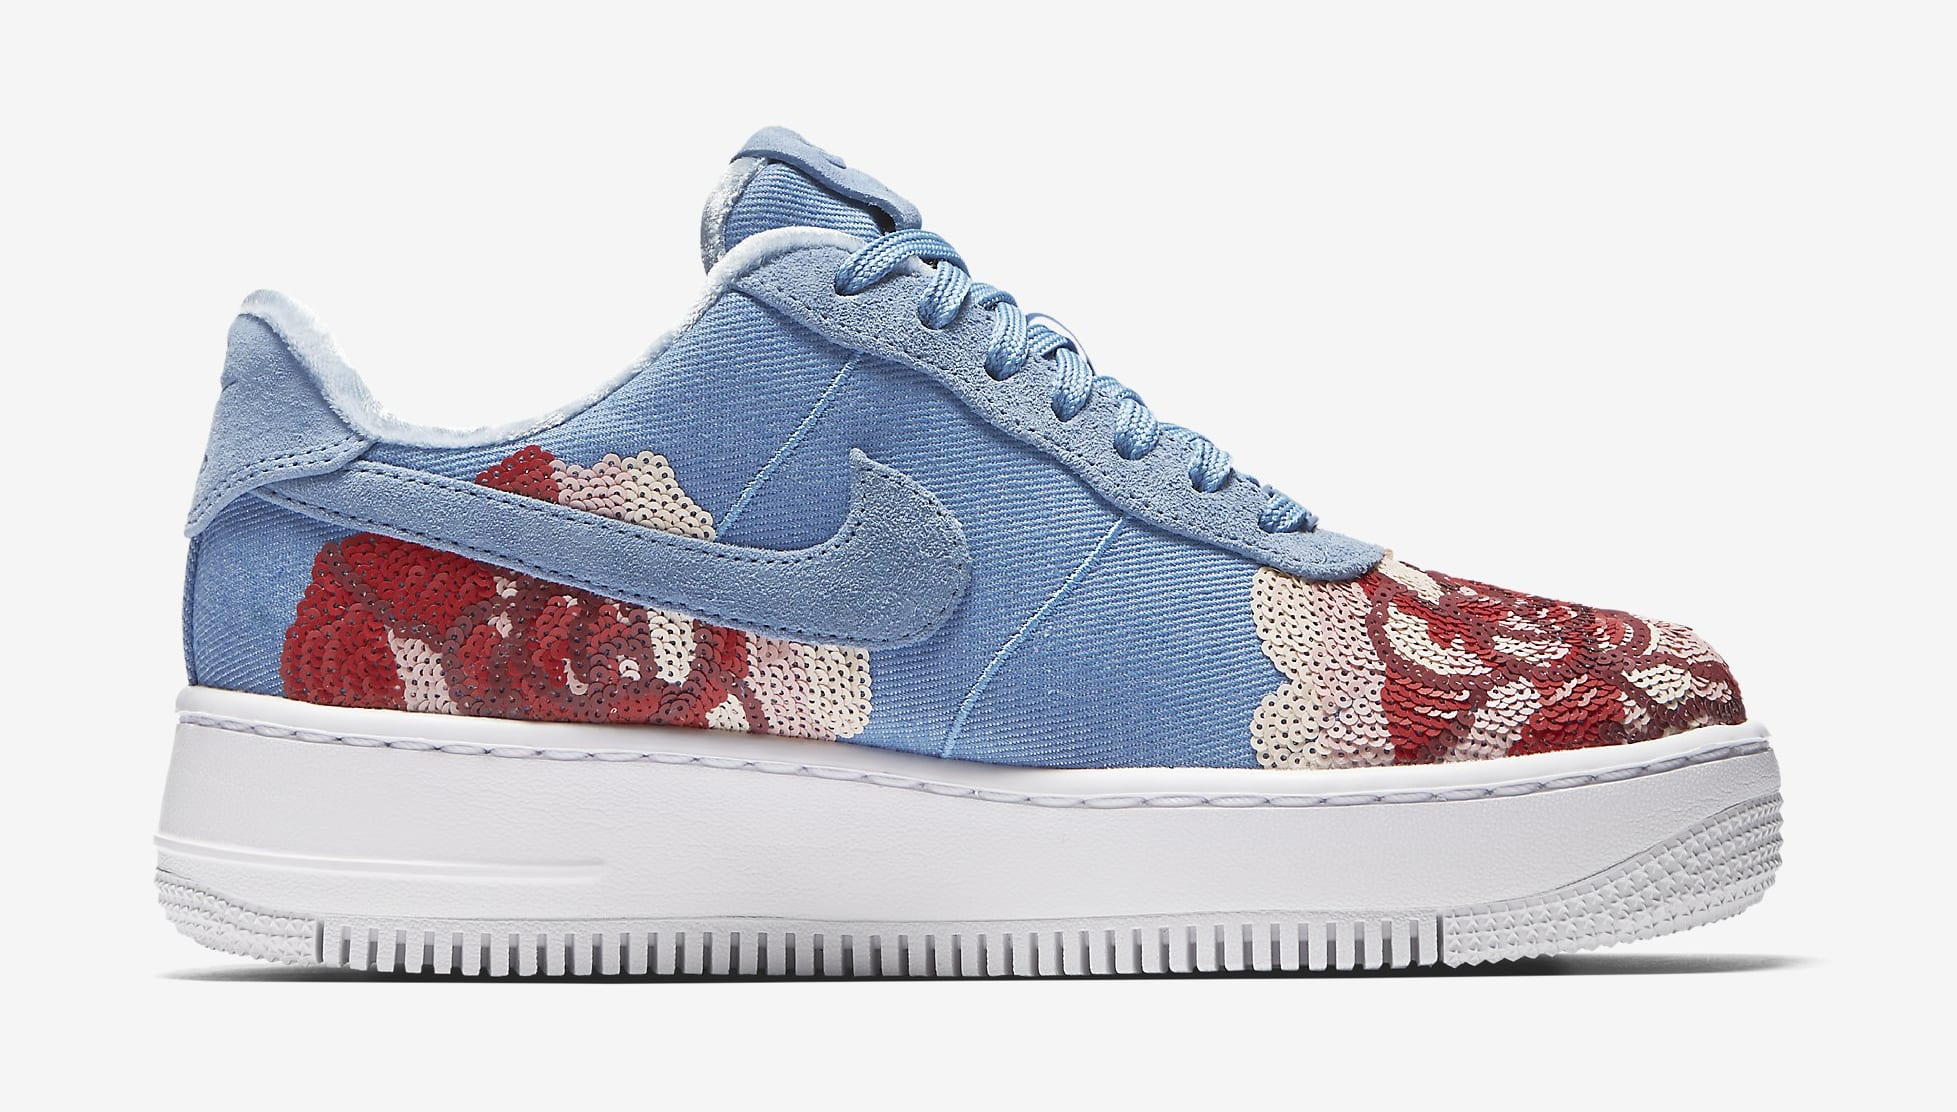 Nike Air Force 1 Low Floral Sequin Pack 898421-402 (Medial)